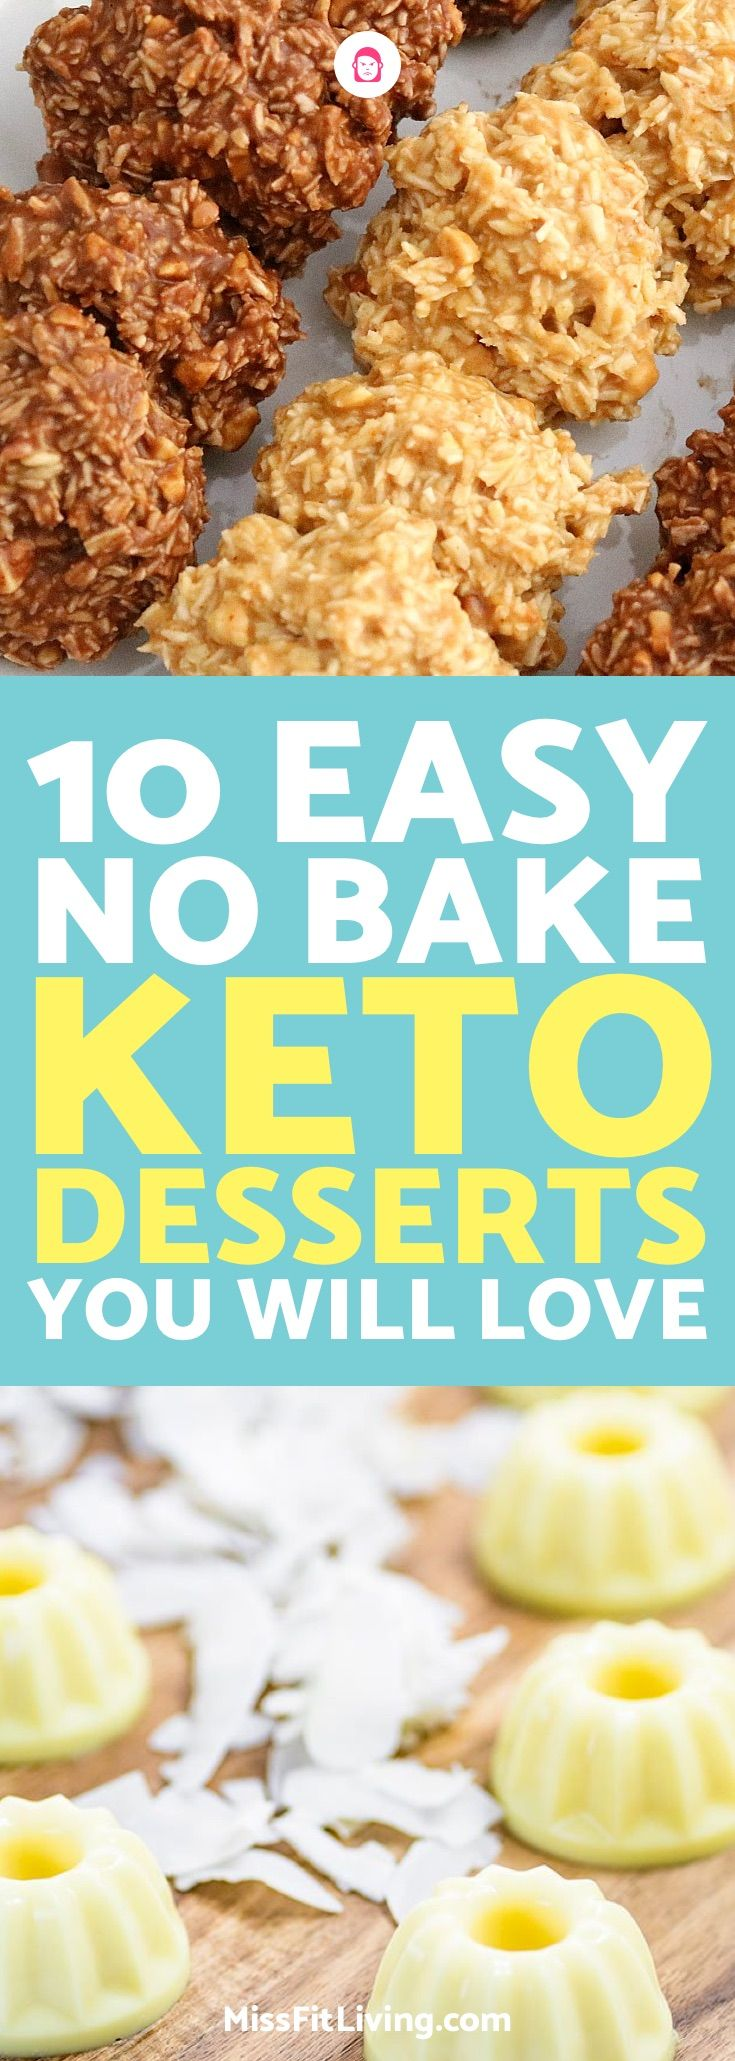 When you're looking for keto desserts you have a ton of different options. Here are some of my favorite ketogenic diet desserts.